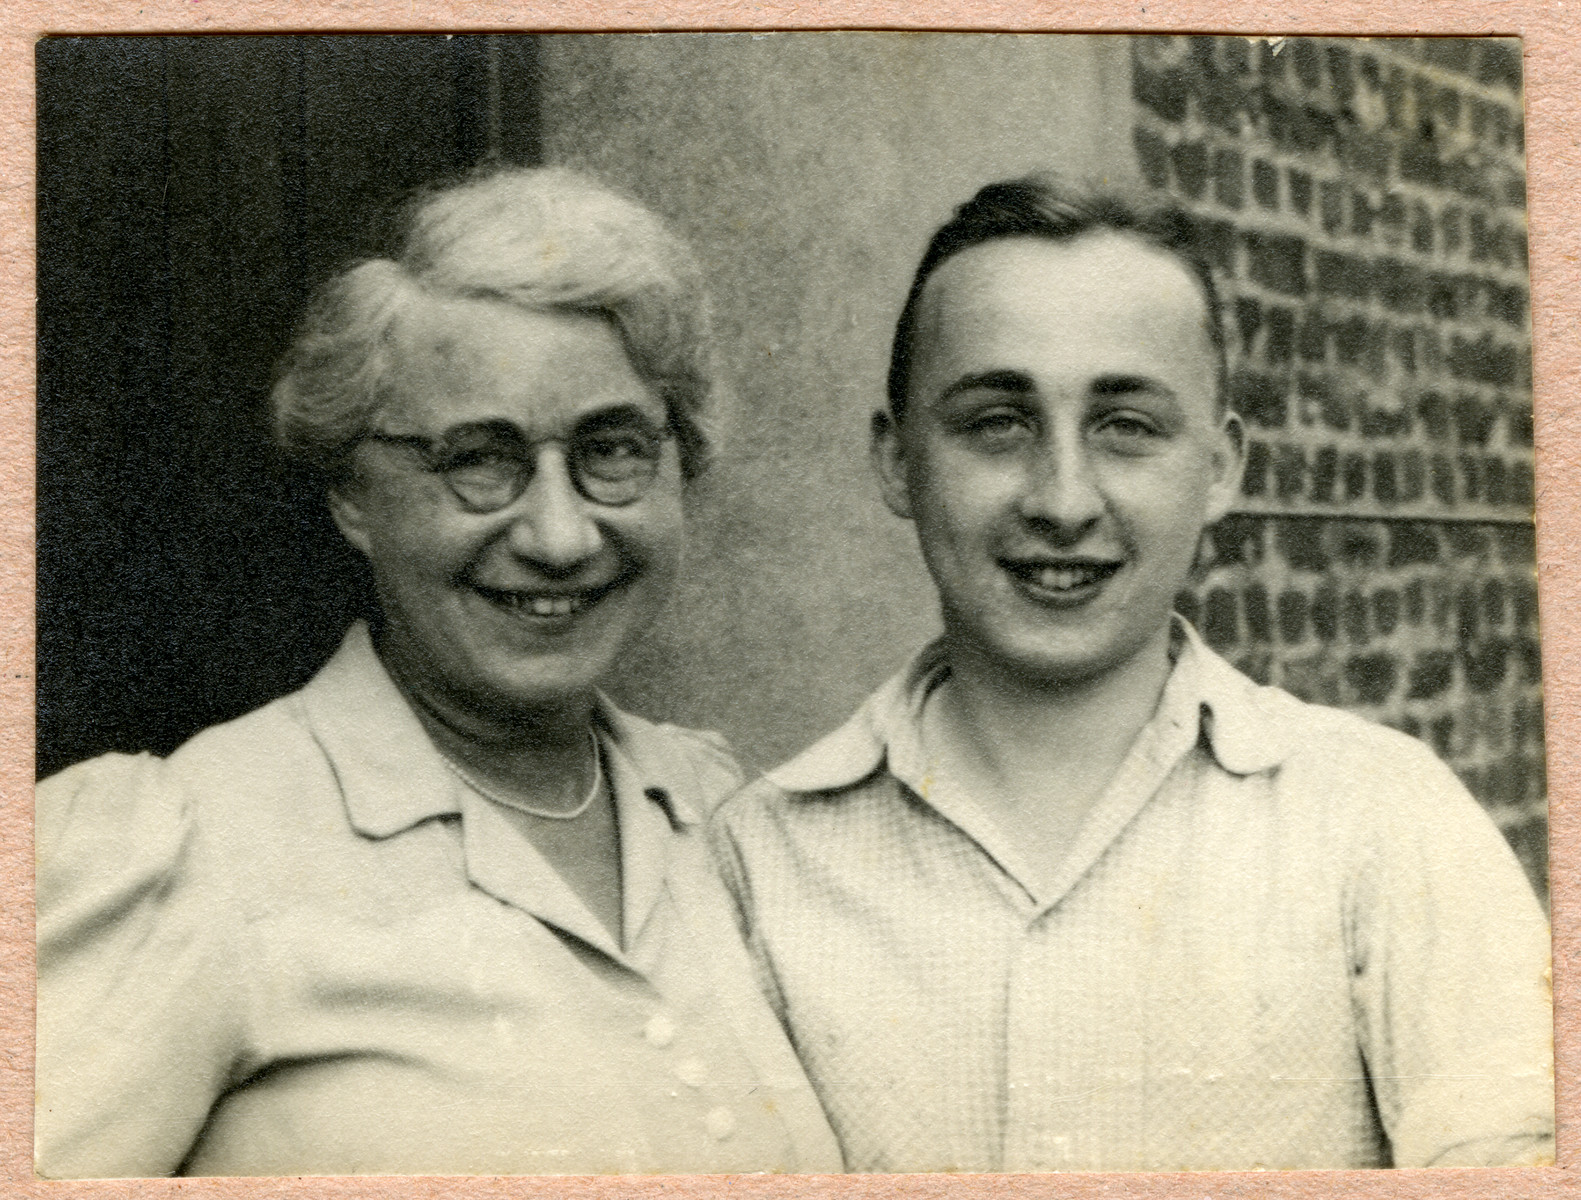 Werner Feigenbaum poses with his mother Clara after liberation.